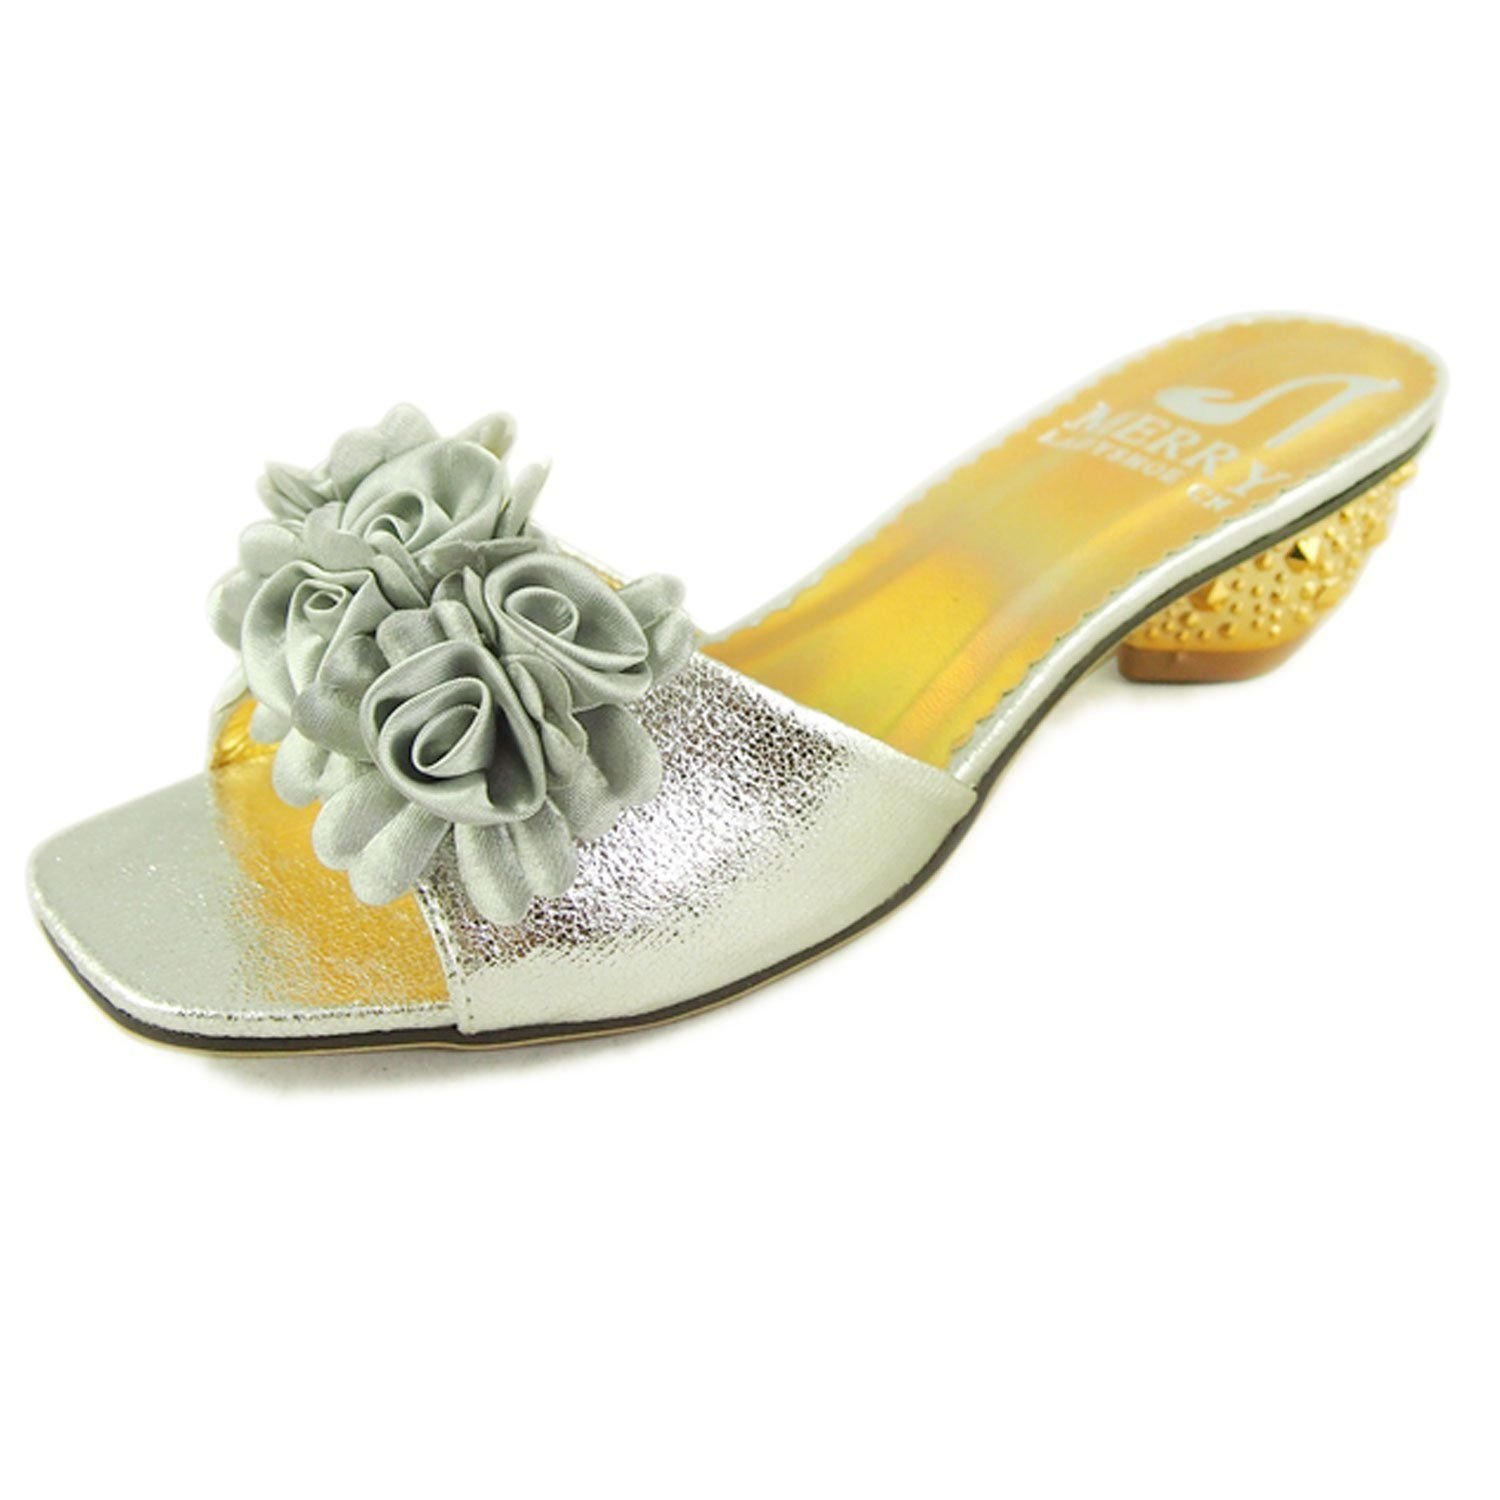 Womens sandals reviews - Just Merry Women S Flowers Low Heel Slides Sandals Read More Reviews Of The Product By